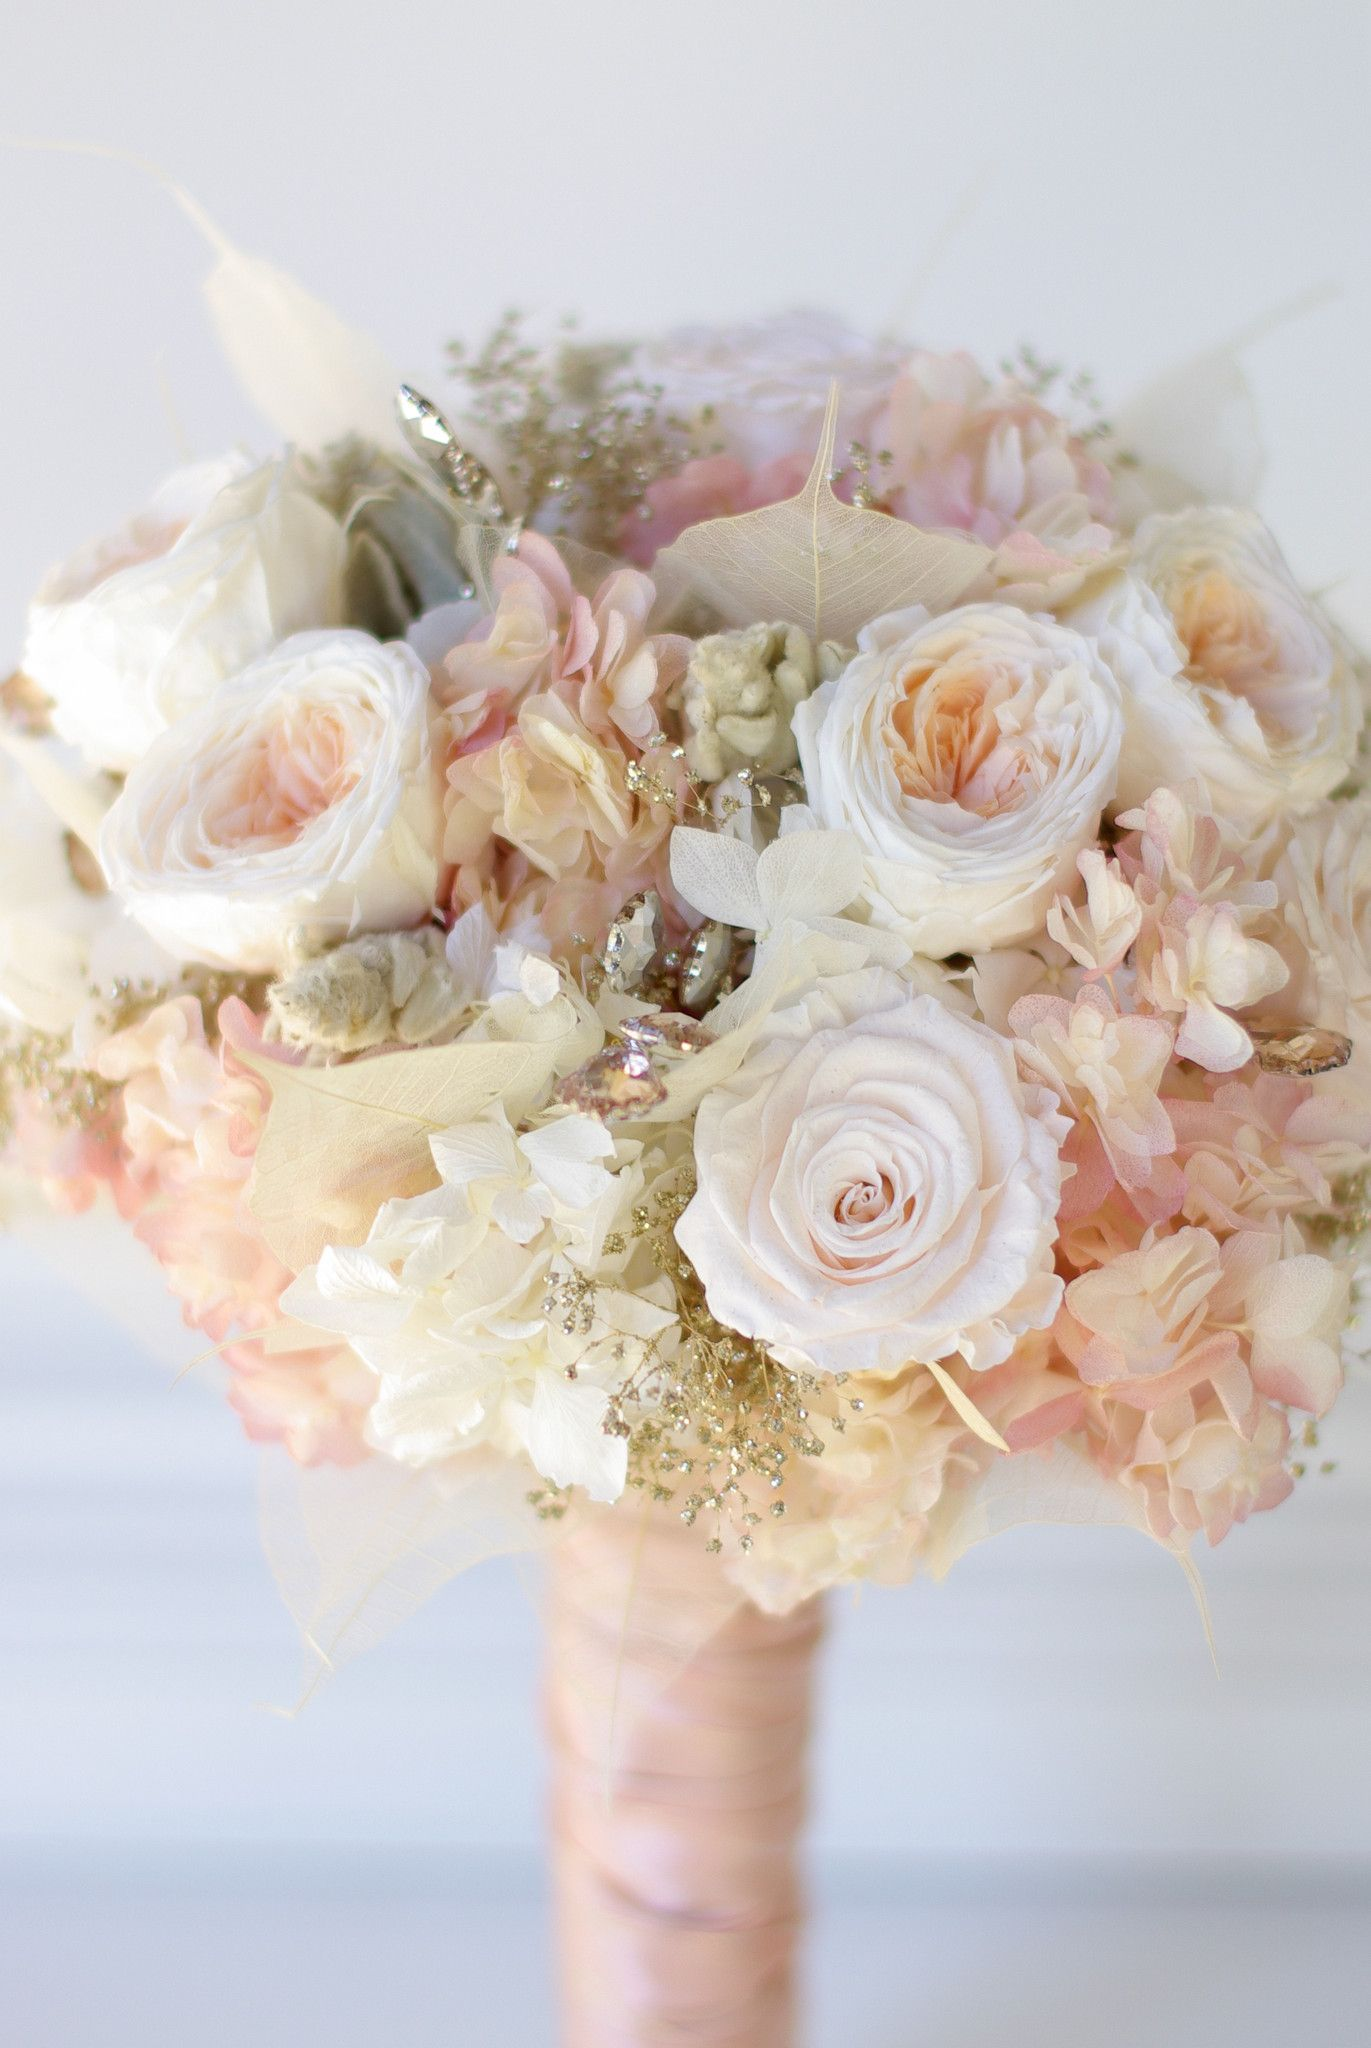 Rose gold bouquet real flowers cotton candy and gold bouquet all preserved real flowers to last for years cotton candy pink hydrangea blush izmirmasajfo Gallery